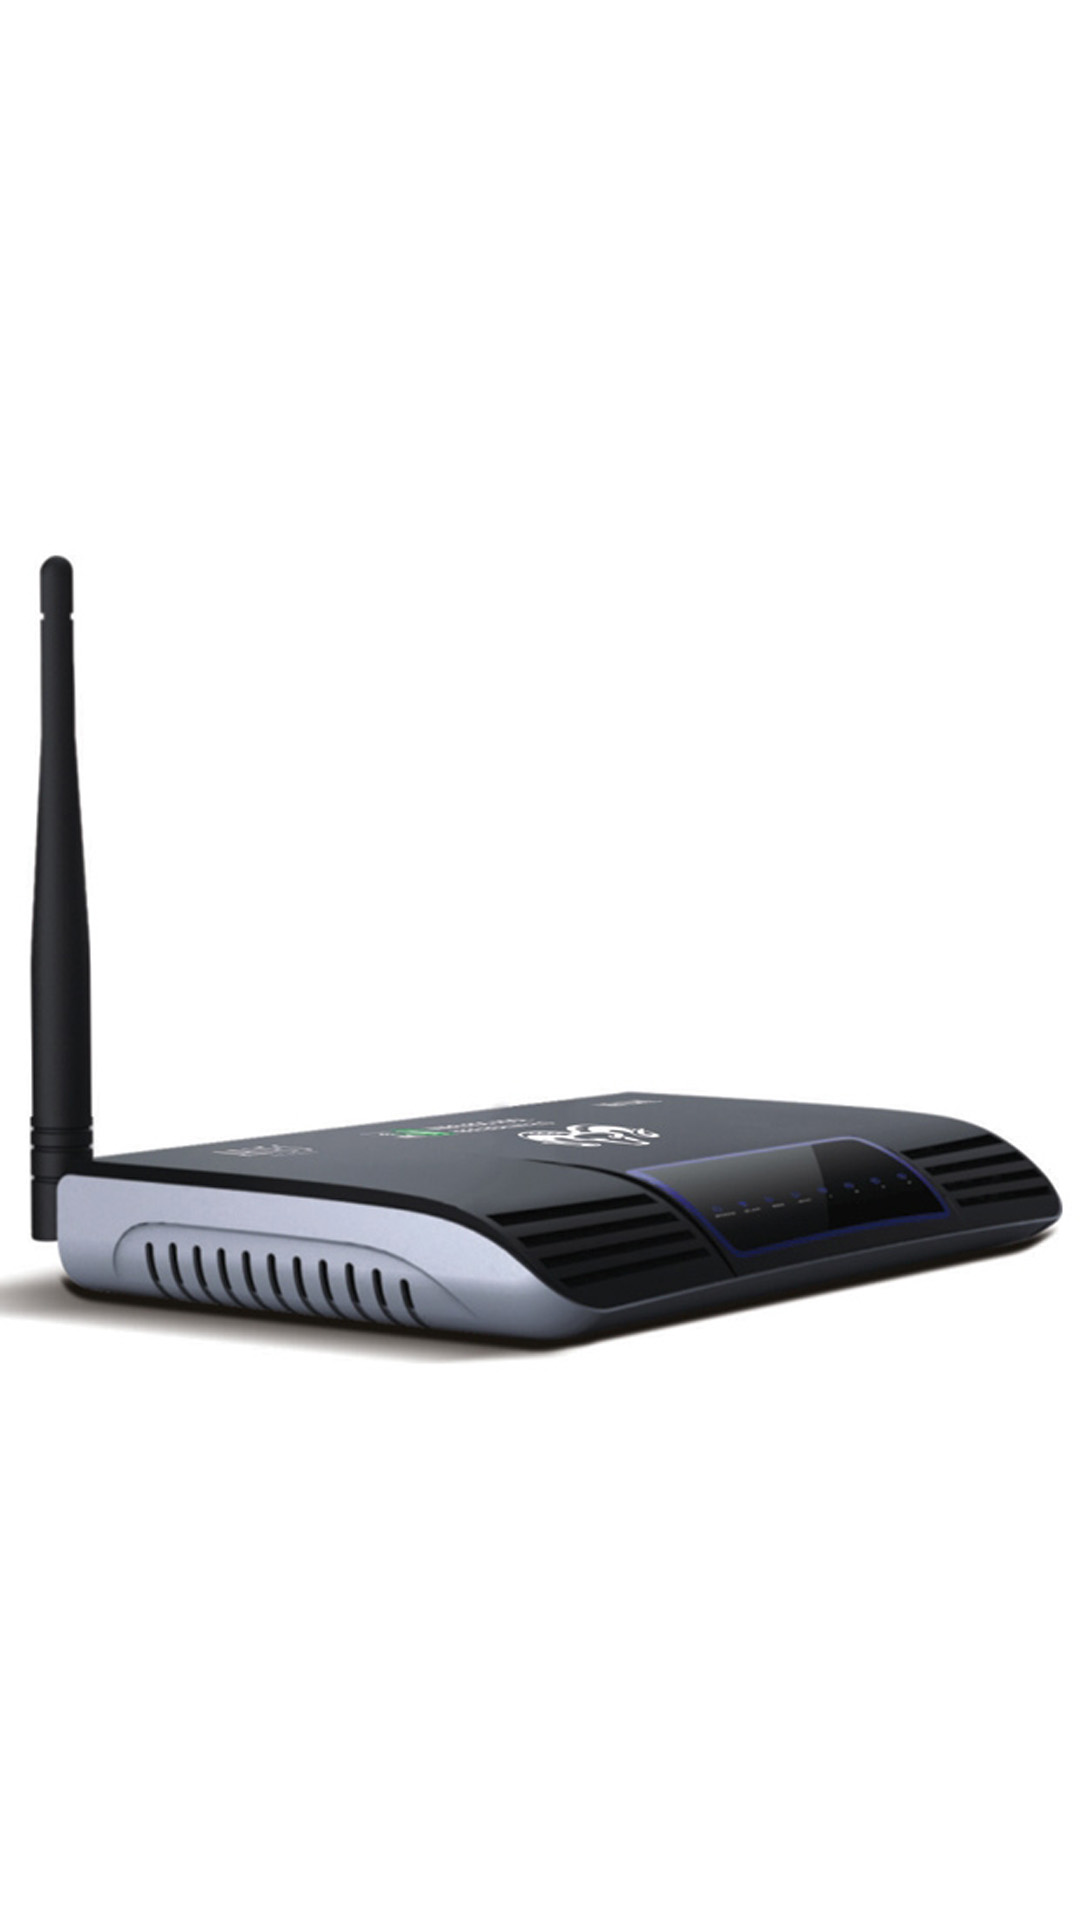 Aries Networks AWR-1104-AN1 150 Mbps Wireless with Modem Router (Black & Silver)